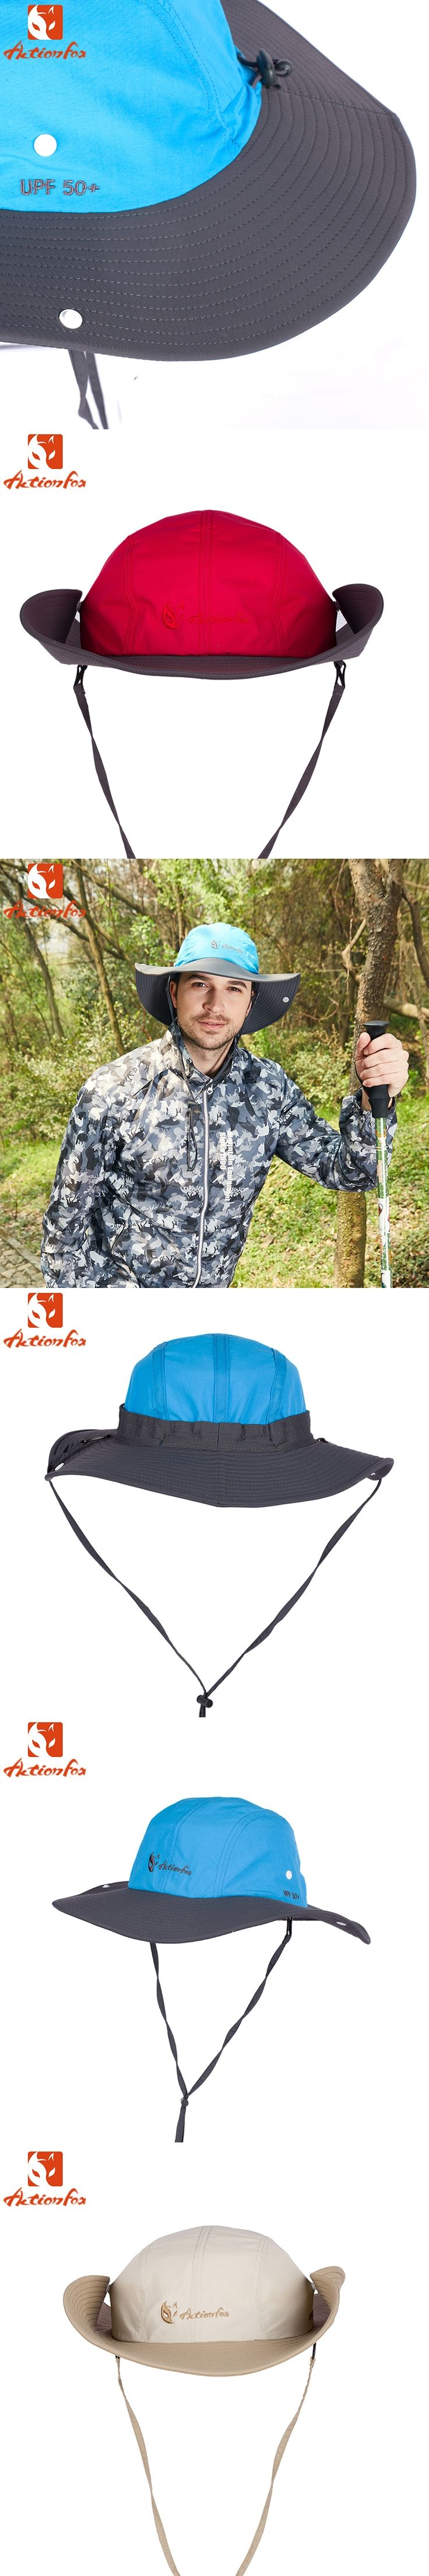 Actionfox Men's Outdoor Hiking Fishing Bob Summer Bucket Hat Wide Brim Hat Sun Cap Men Sombrero Gorro Hats for Men 631-4180